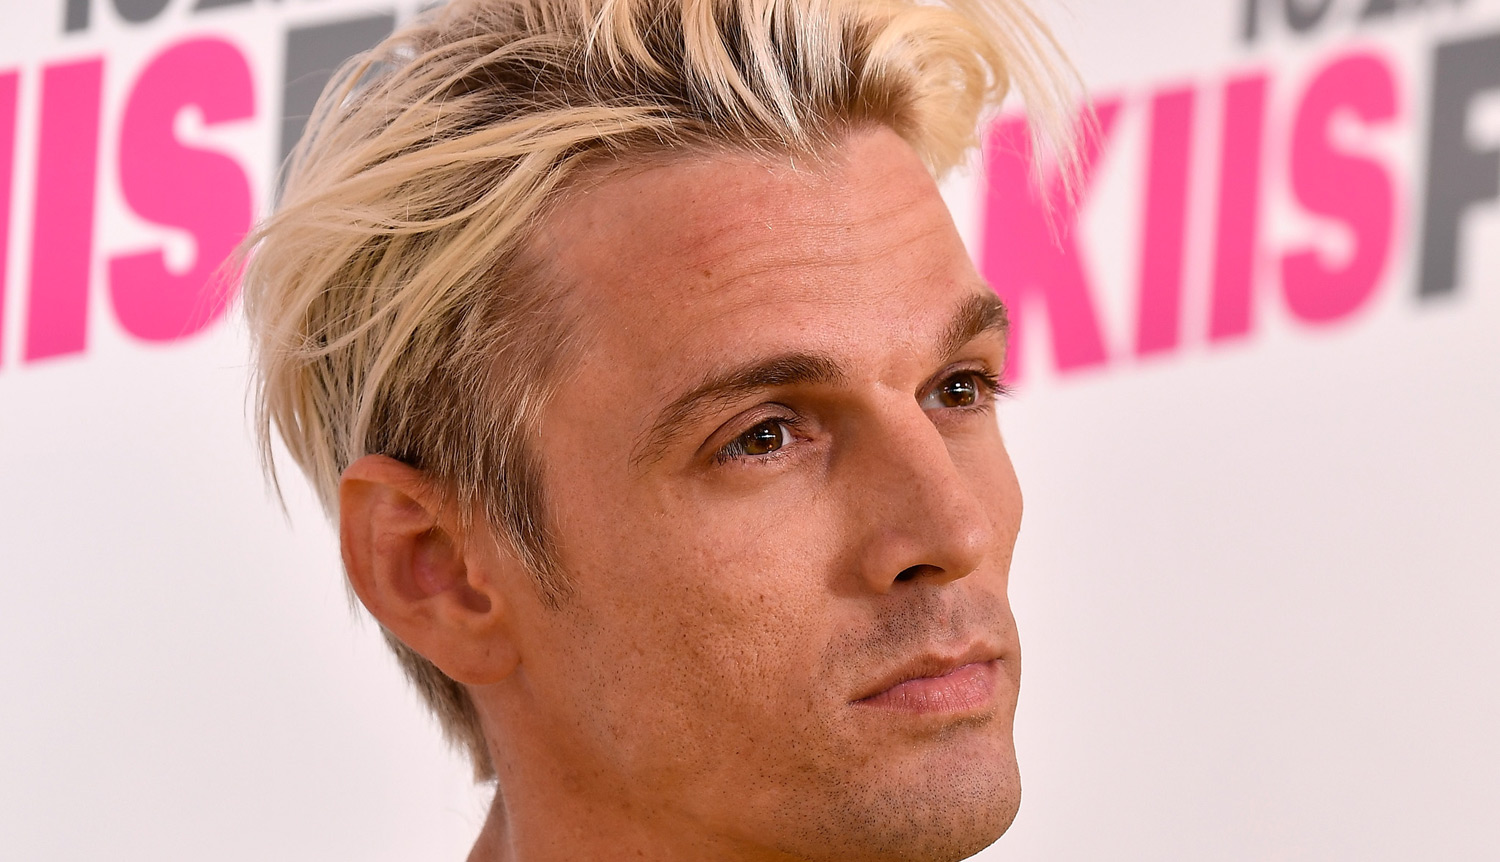 Aaron Carter comes out as bisexual in Twitter post | Daily